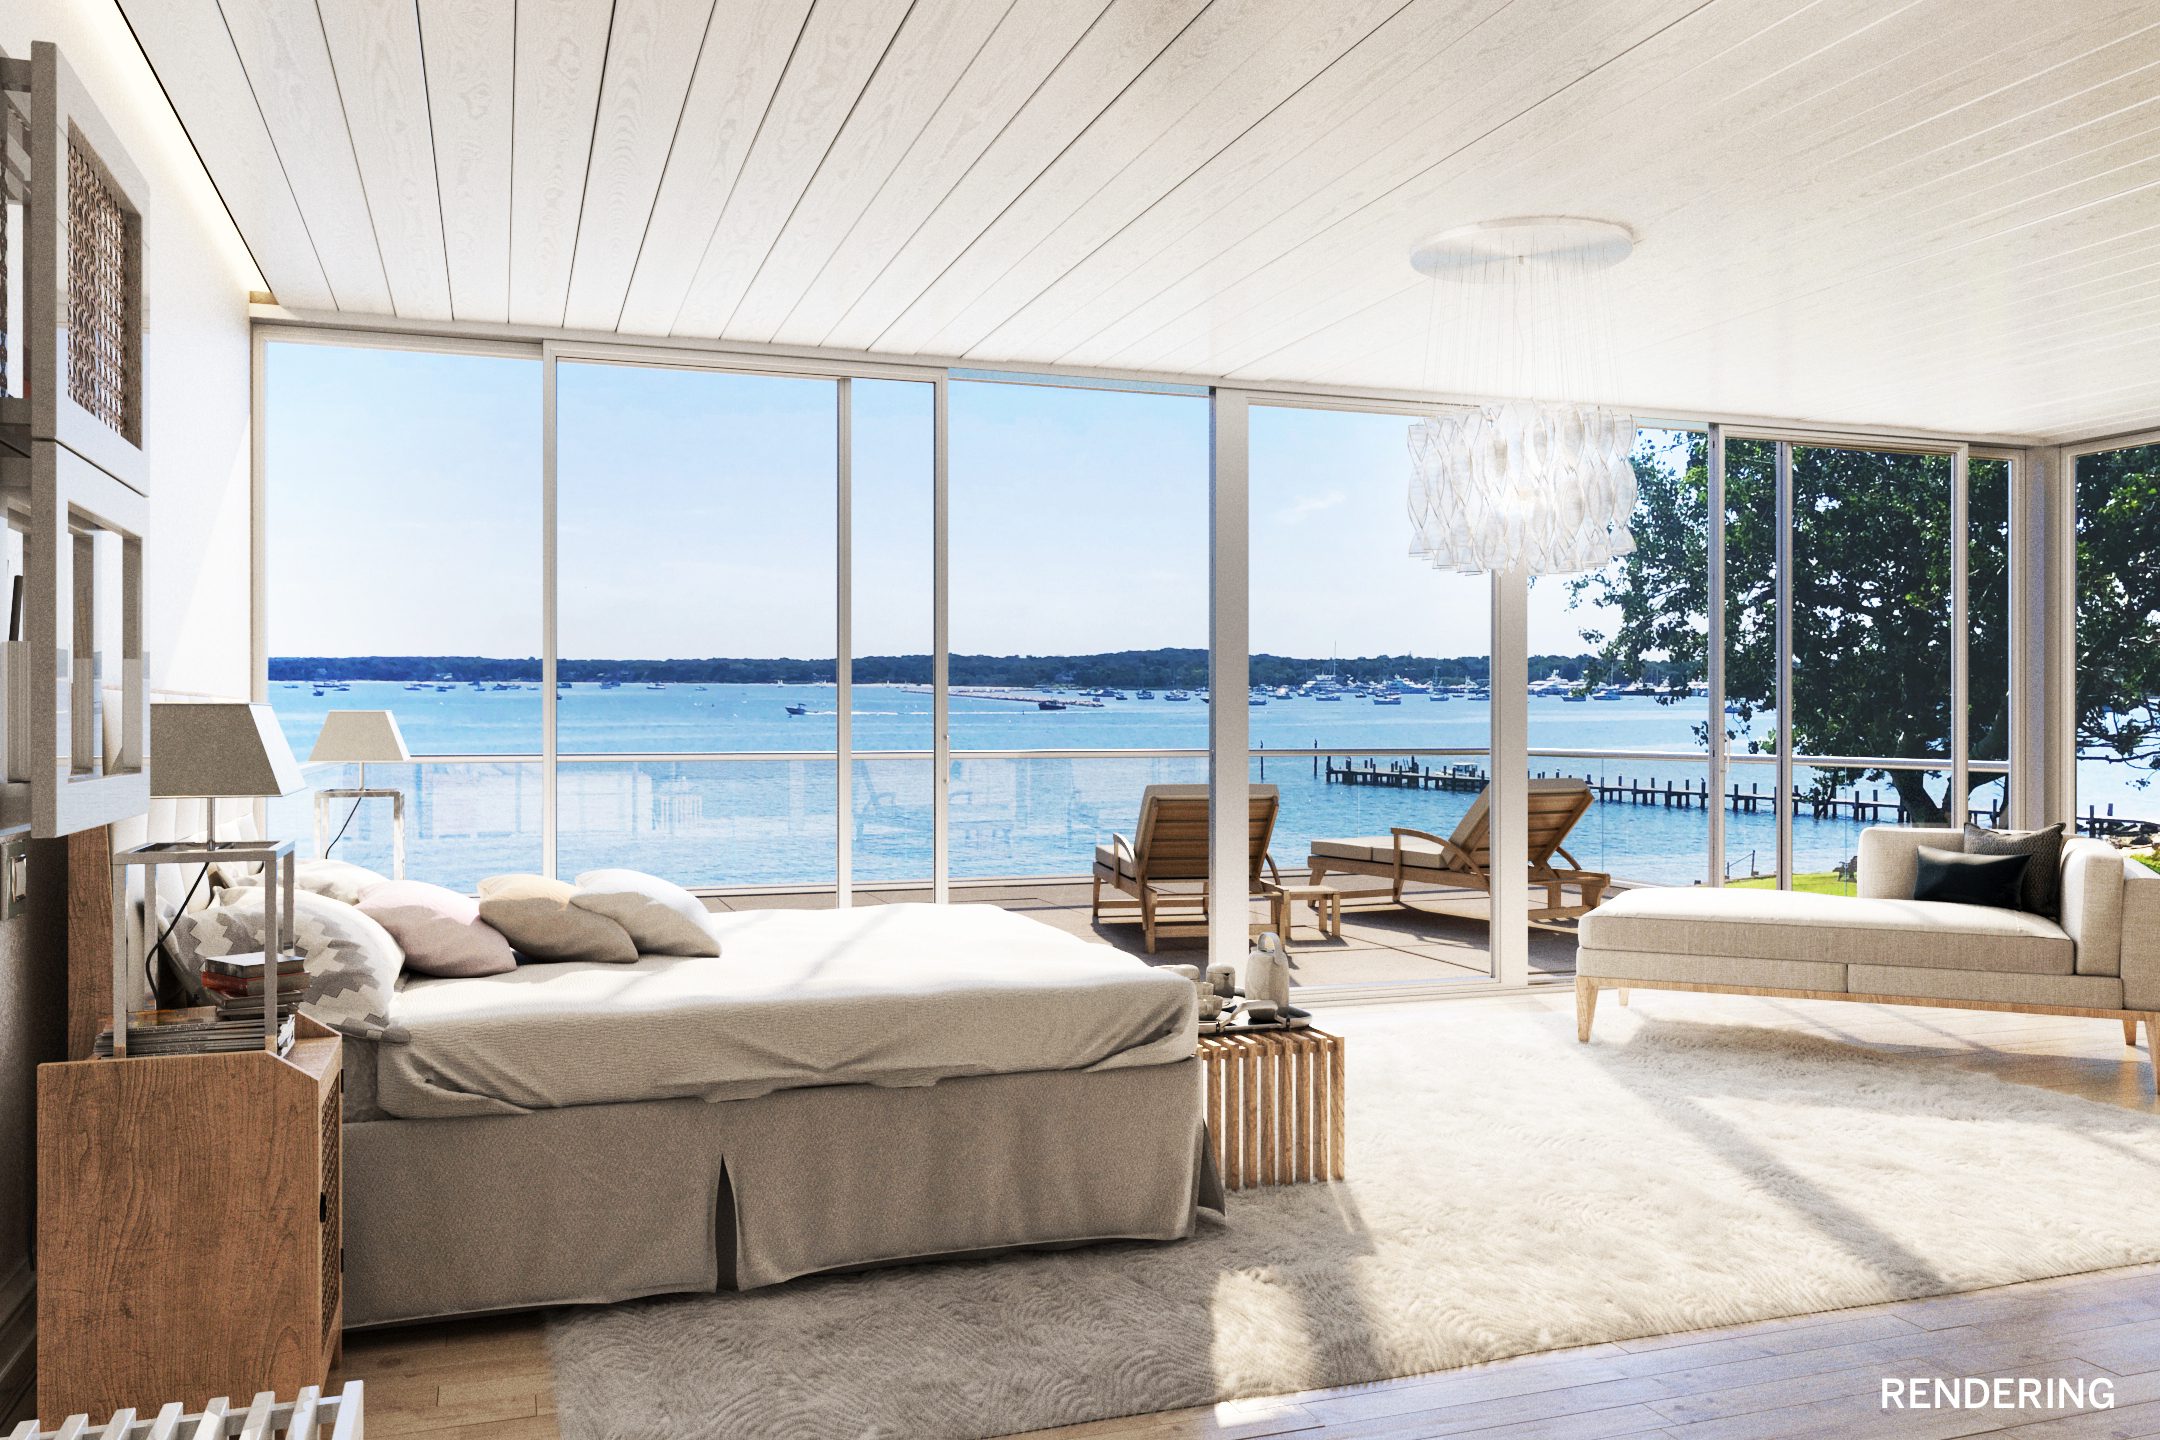 Renderings of a potentional new build at 24 East Harbor Drive.